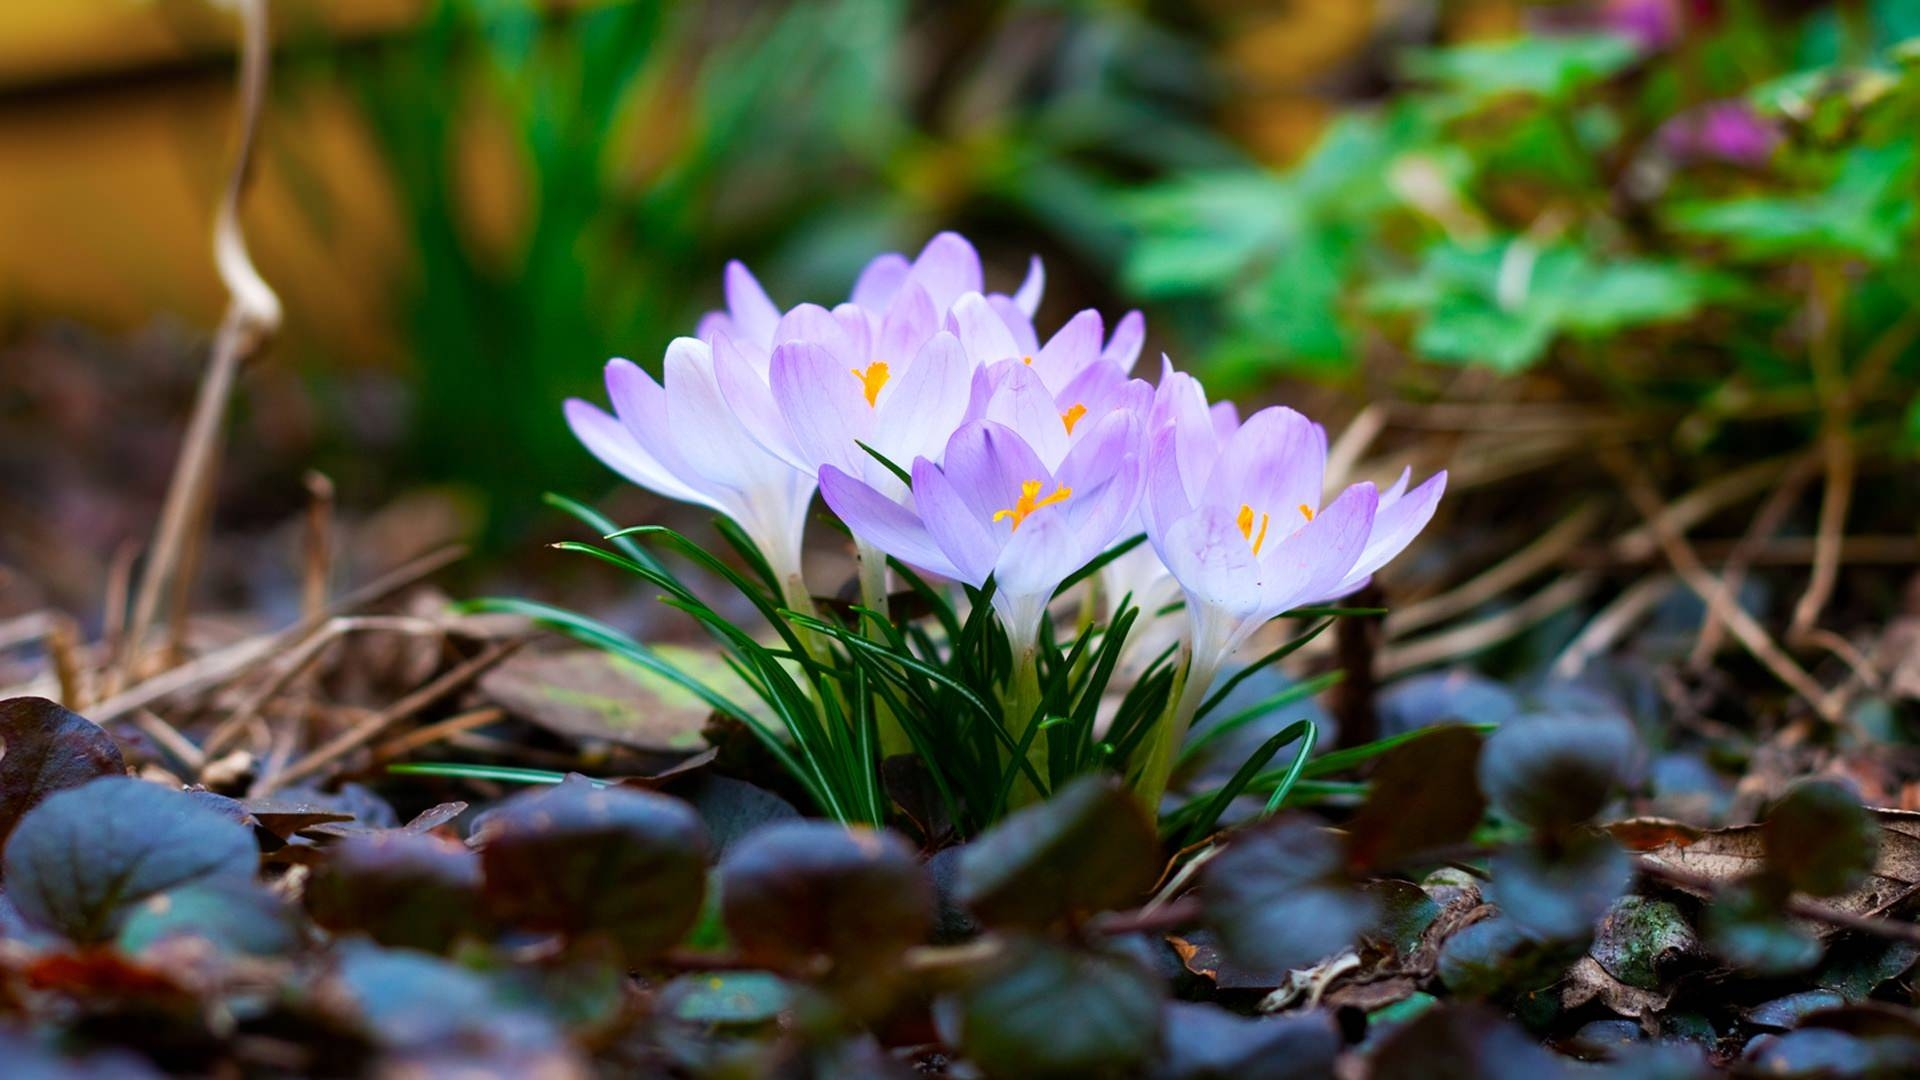 hd nature wallpaper for desktop with spring flowers